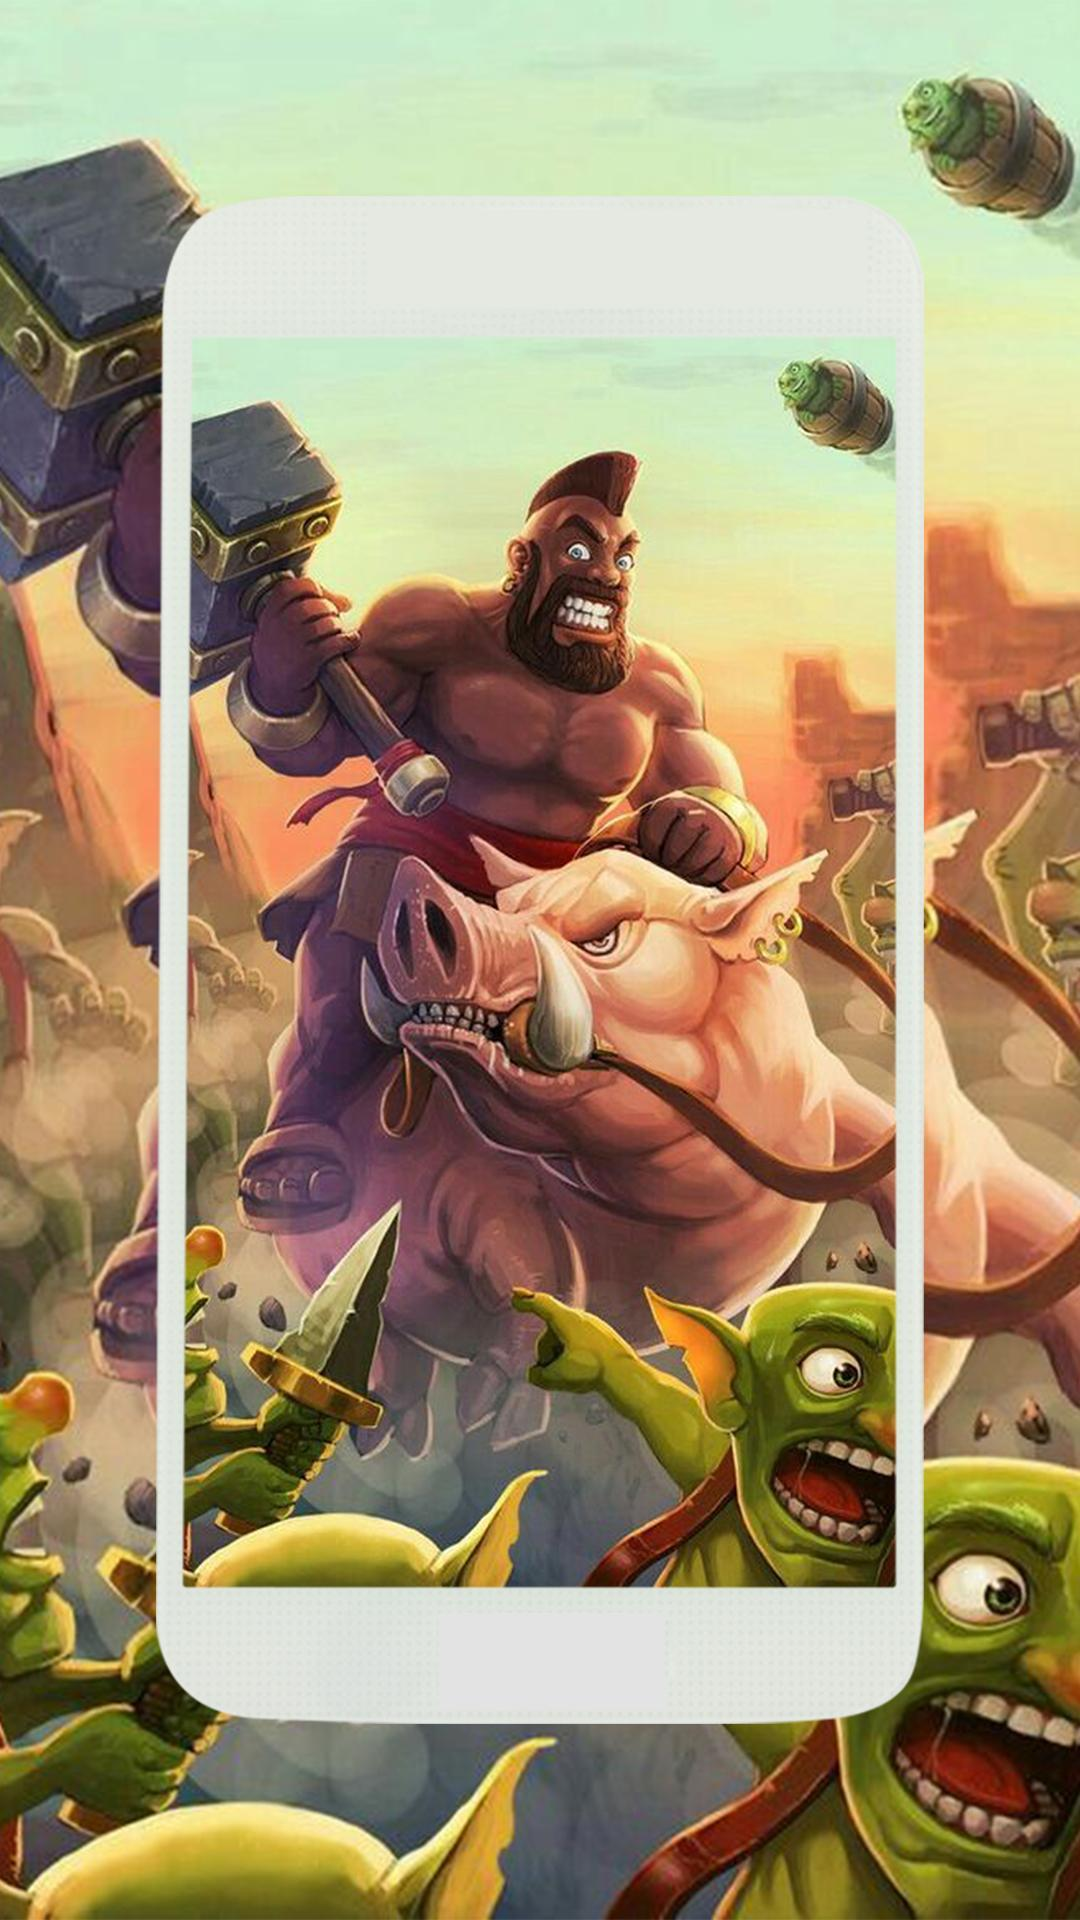 Clash Coc Hd 4k Wallpapers 2019 For Android Apk Download